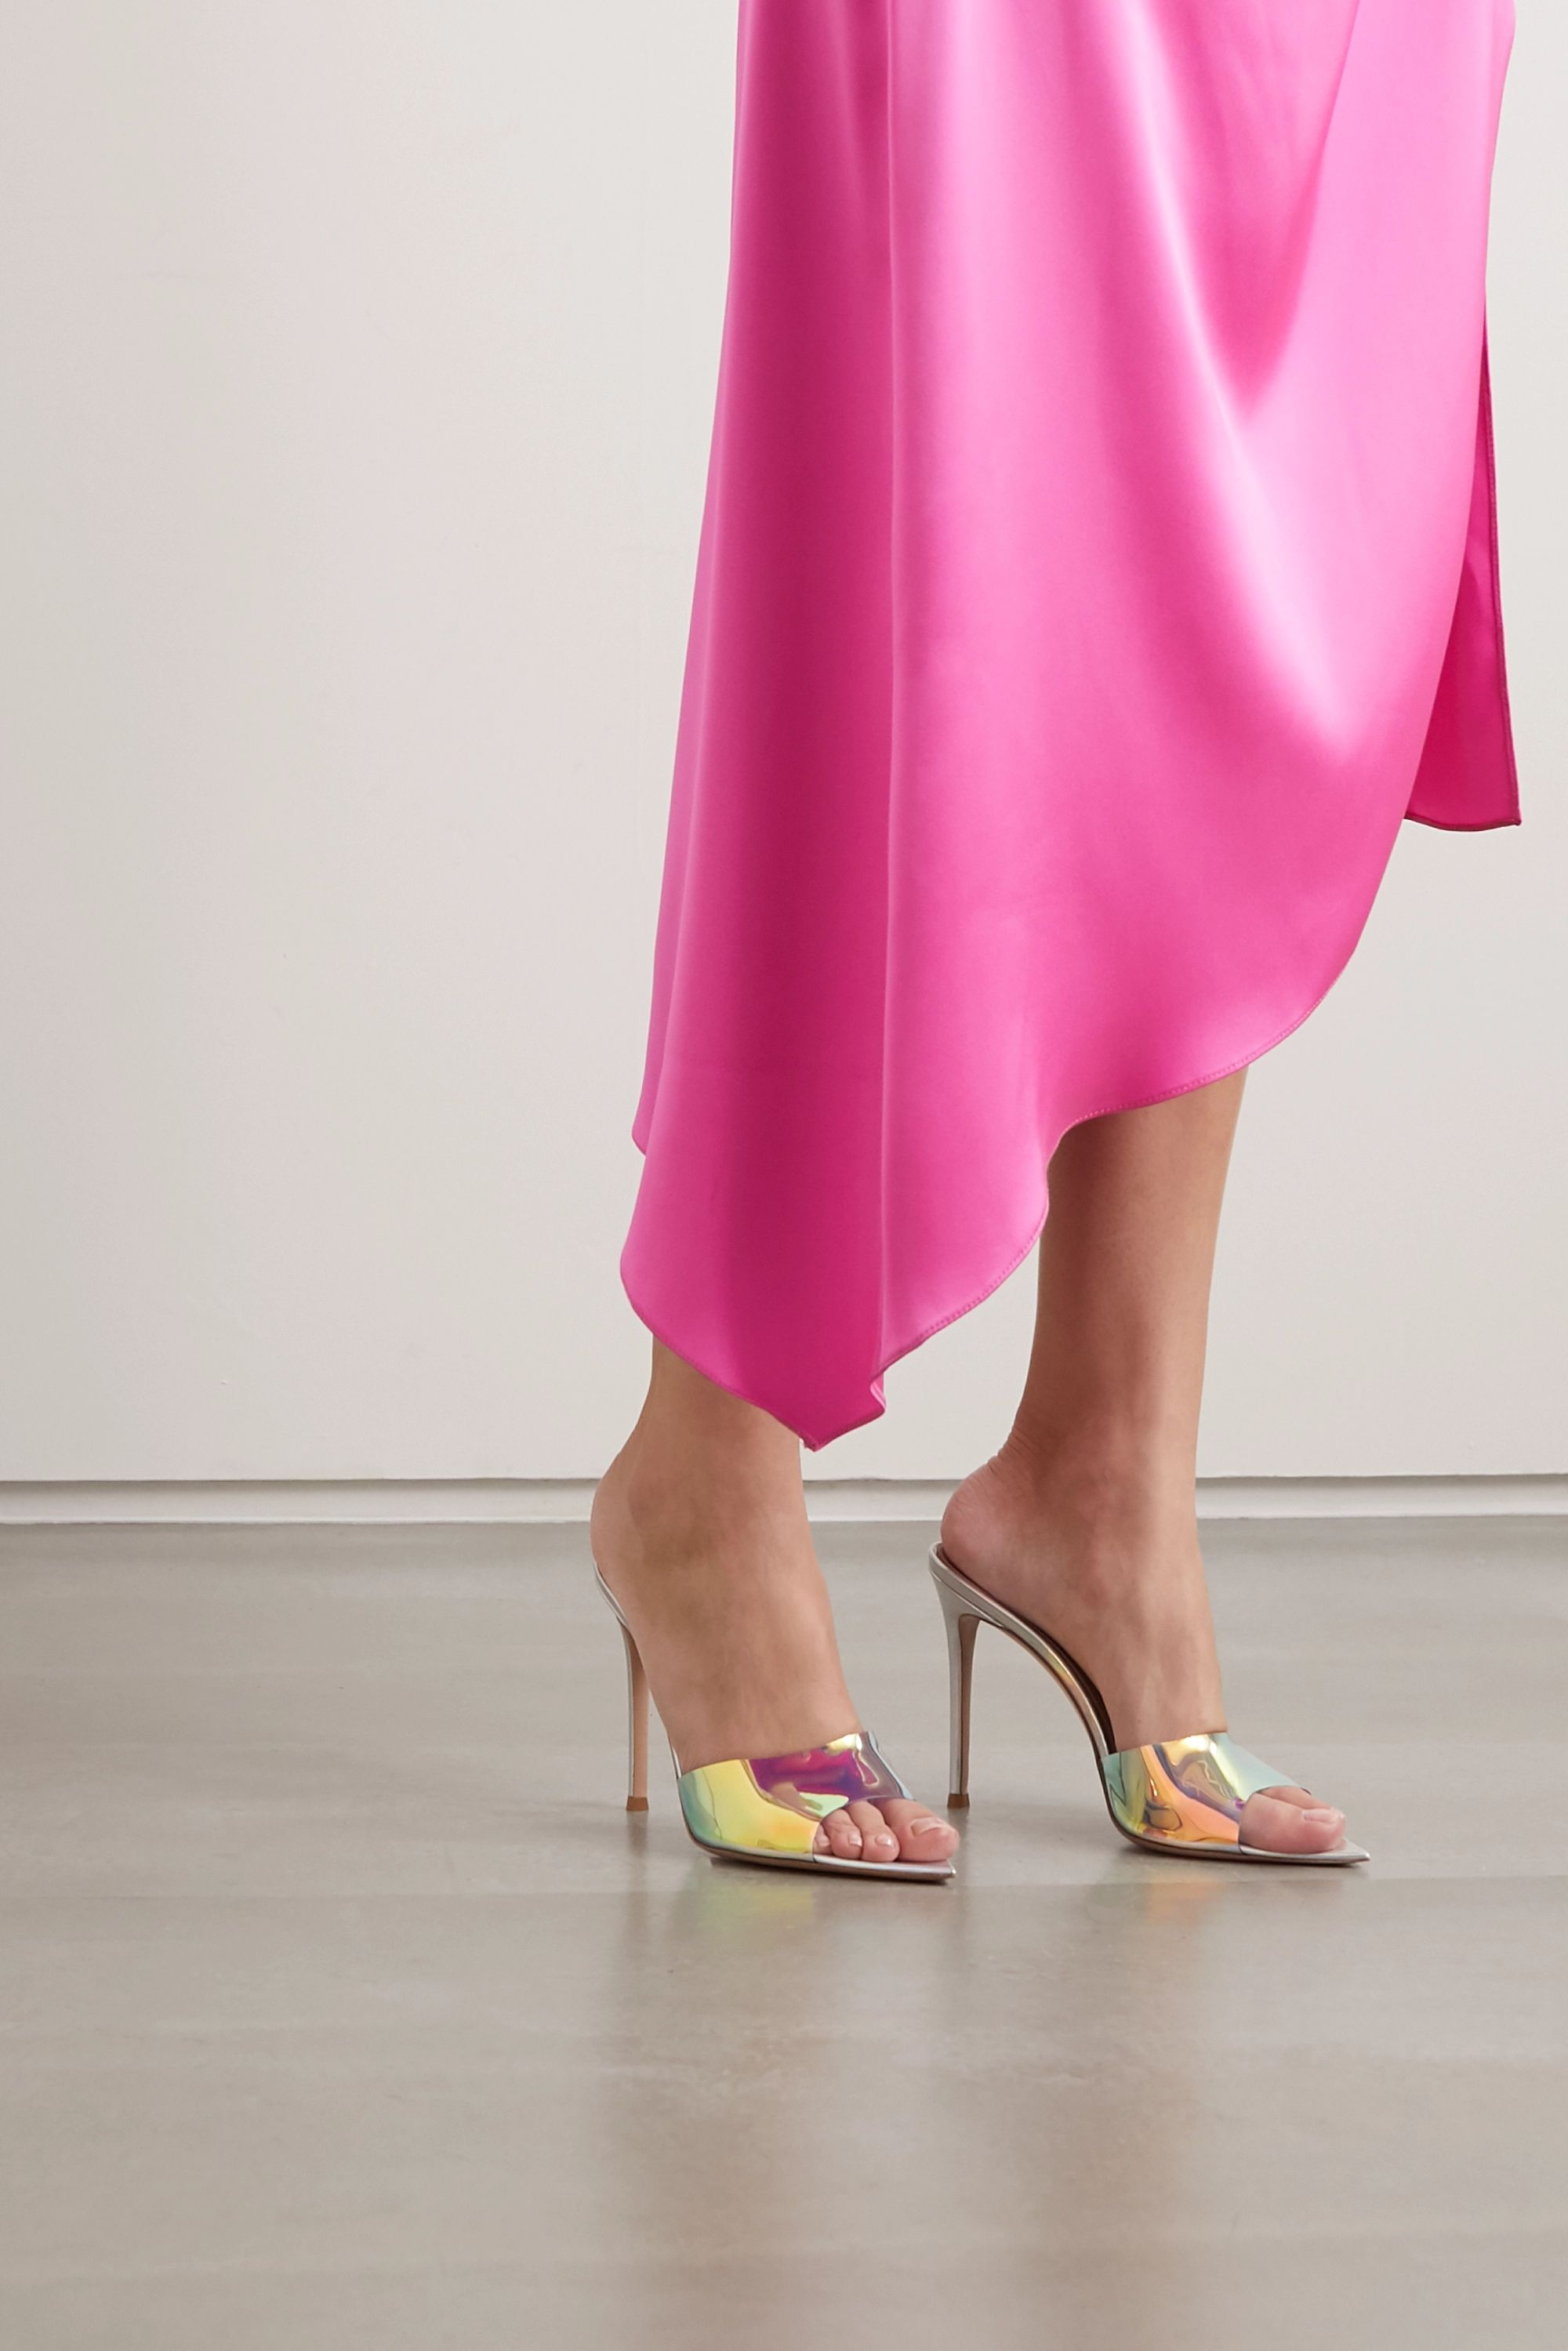 Gianvito Rossi 105 iridescent PVC and leather mules